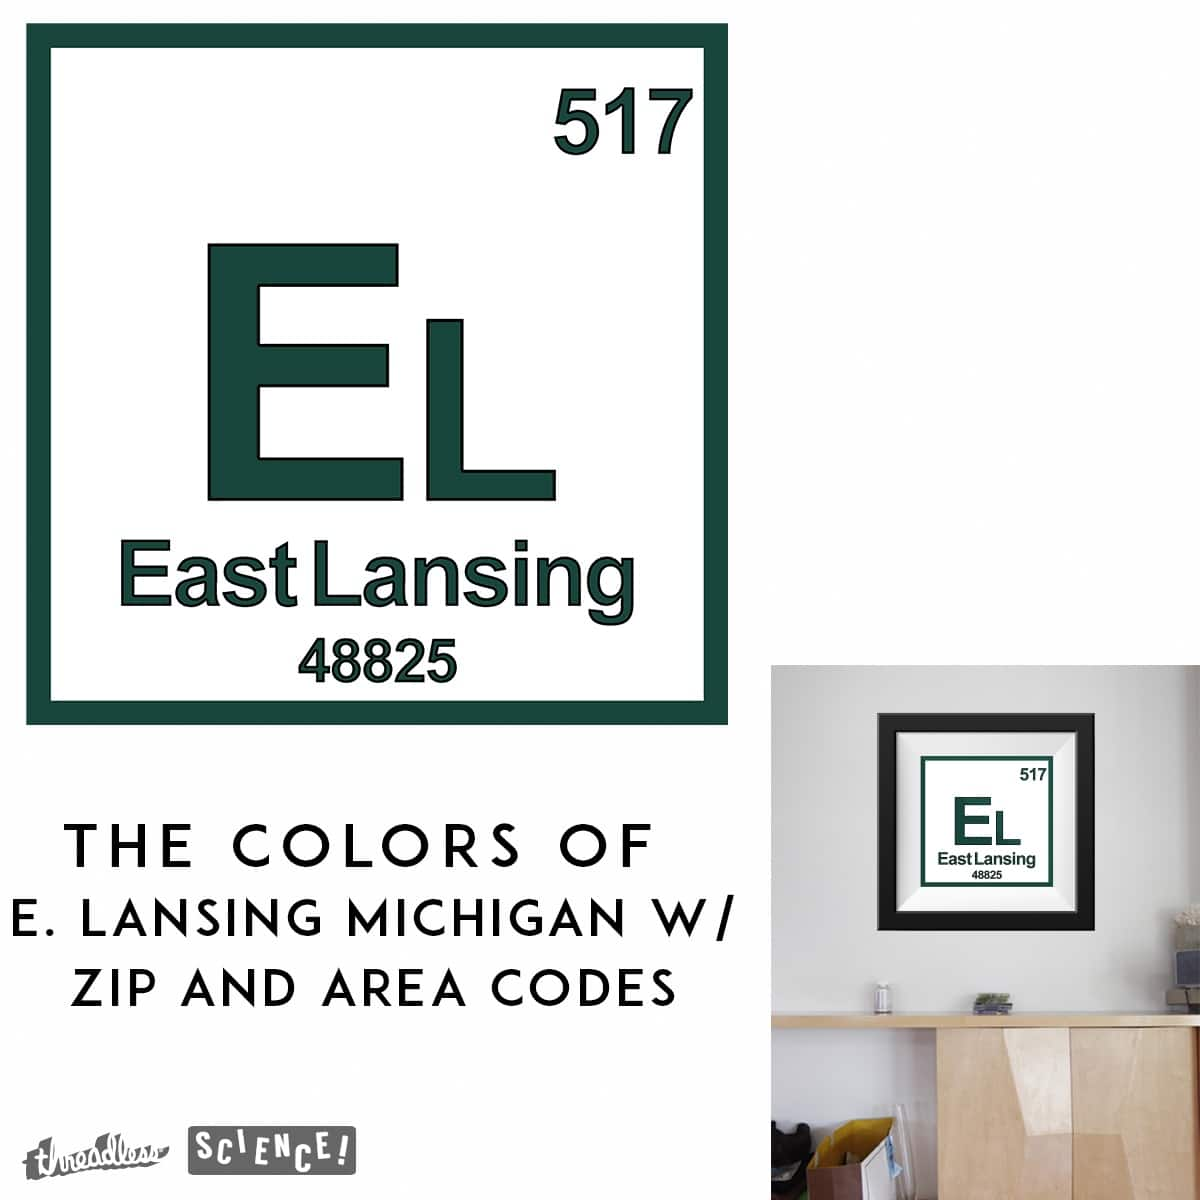 Score east lansing michigan periodic table by heybert00 on threadless east lansing michigan periodic table by heybert00 on threadless gamestrikefo Choice Image